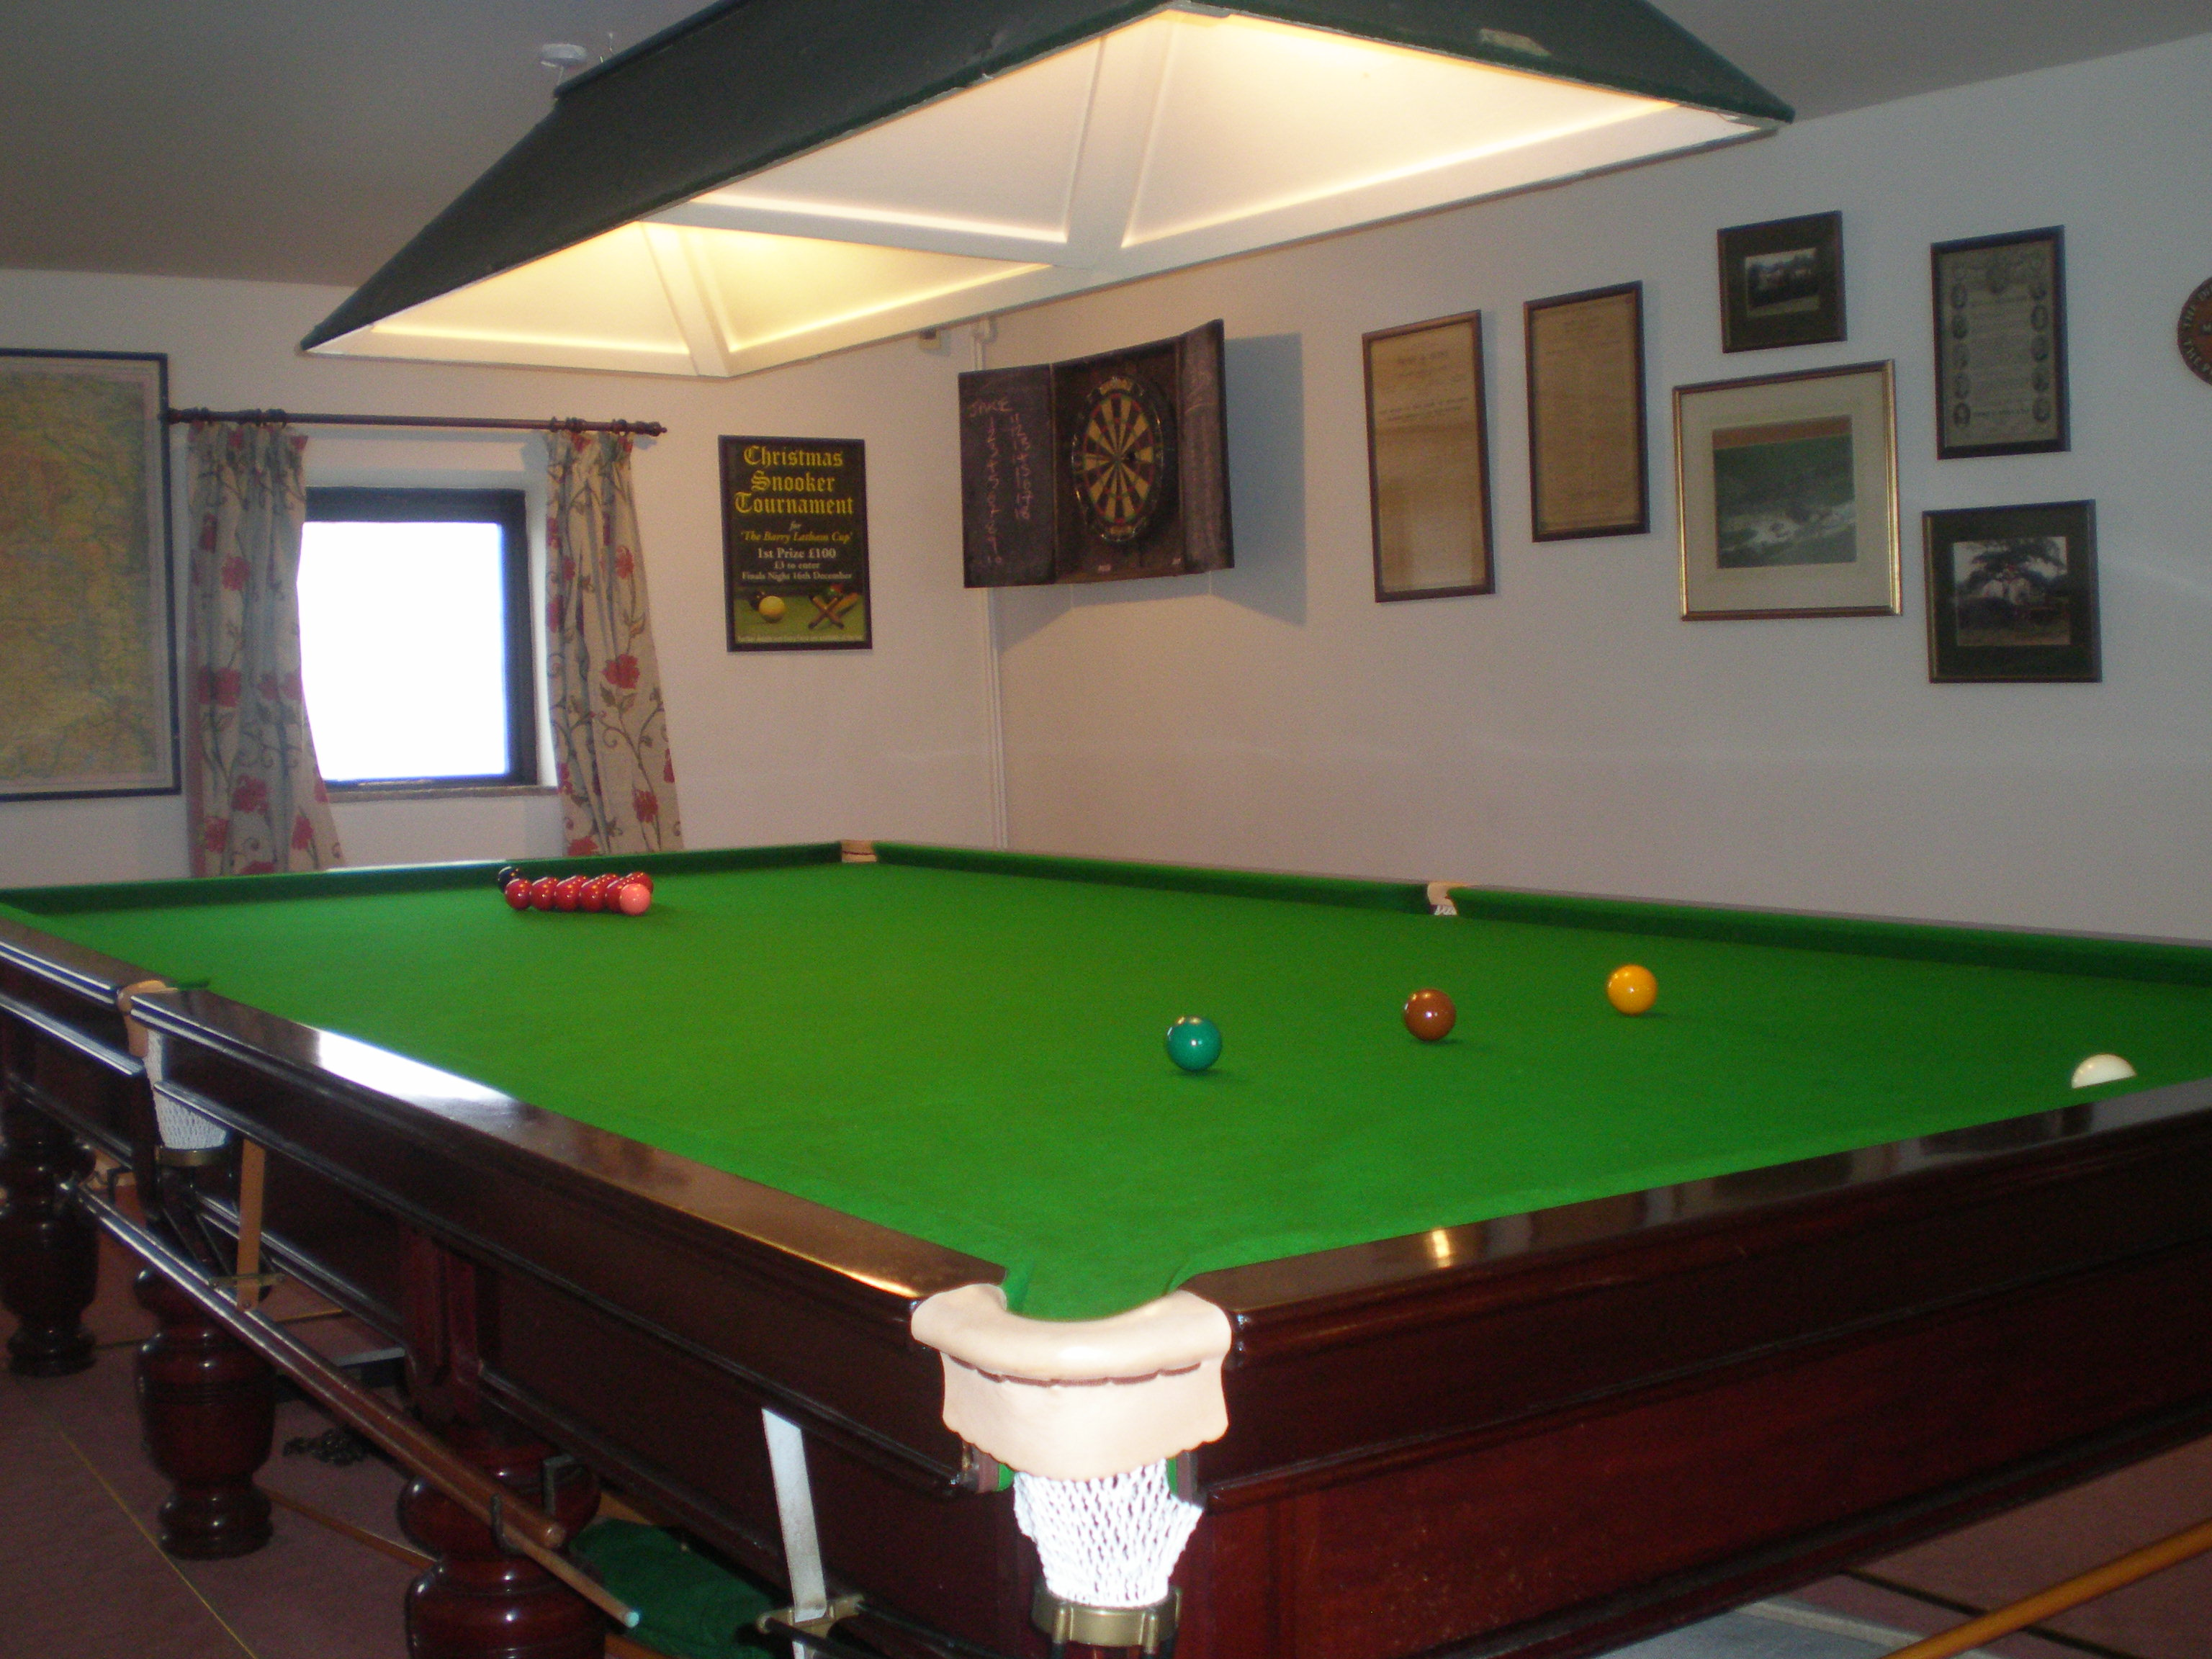 Indoor Heated Swimming Pool Billiards Snooker Table